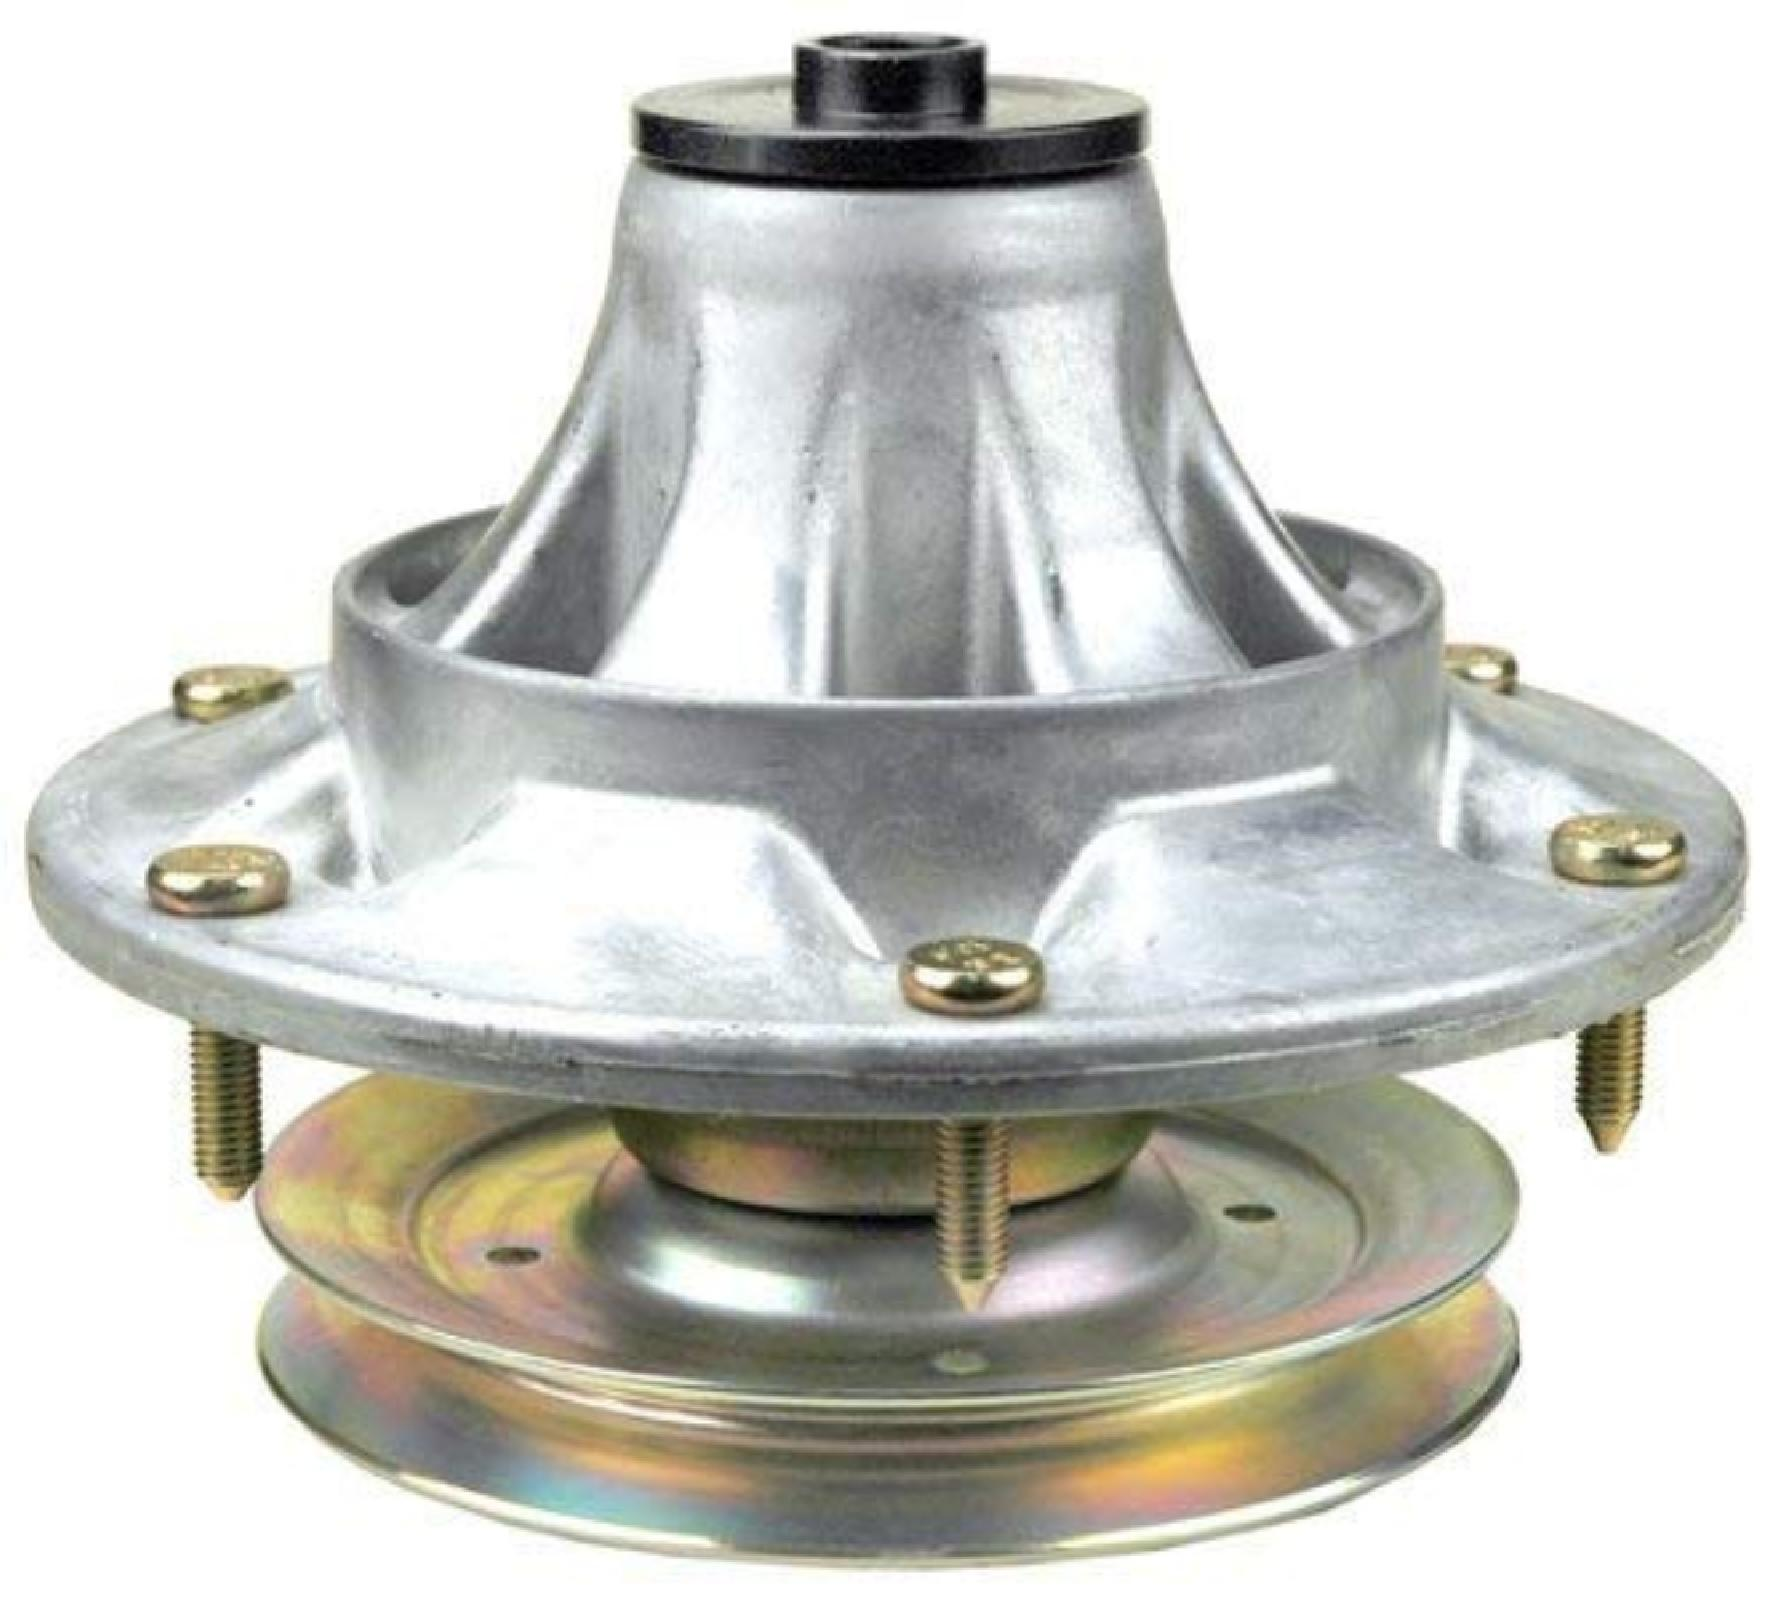 Spindle assembly replaces John Deere TCA13807 AM141457